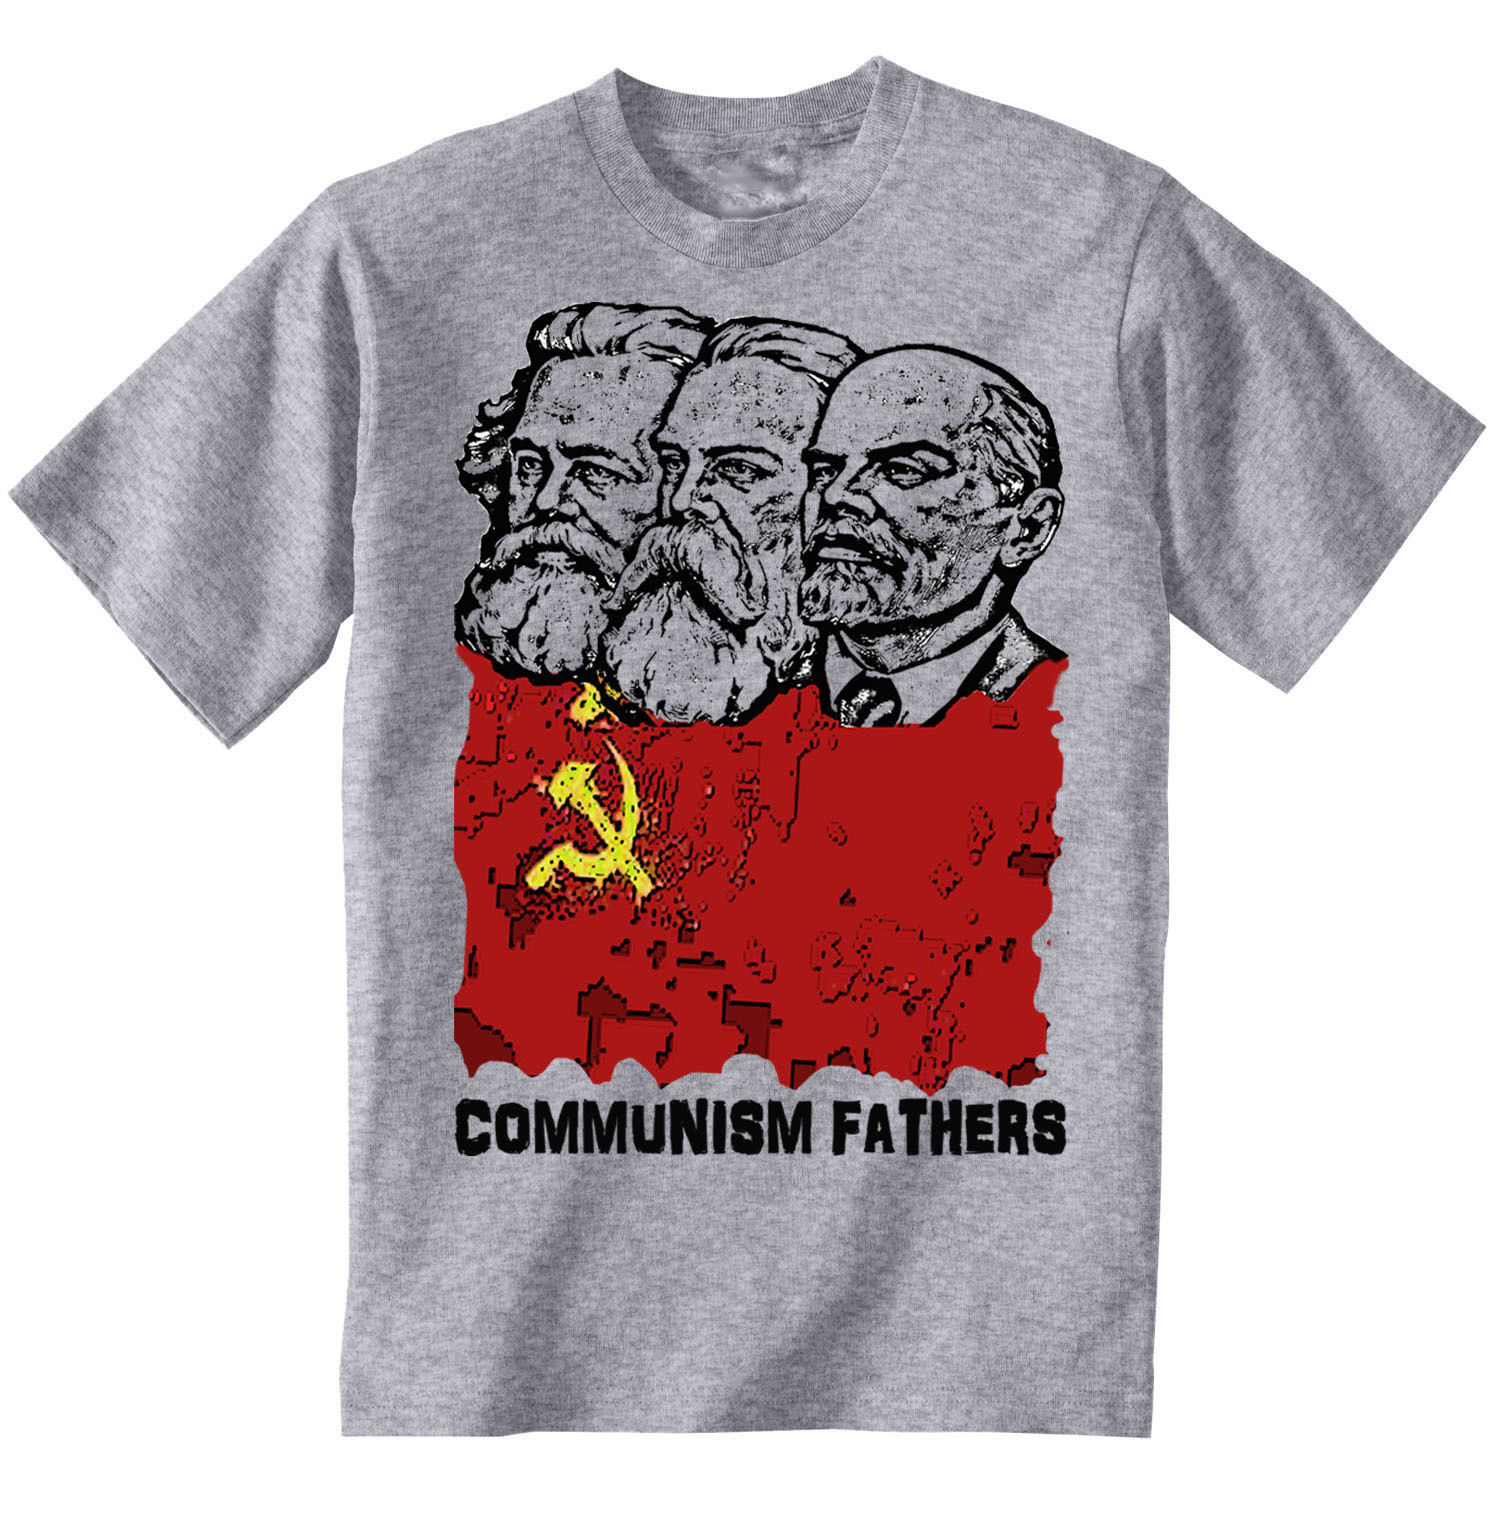 Primary image for COMMUNISM FATHERS - AMAZING GRAPHIC GREY TSHIRT- S-M-L-XL-XXL